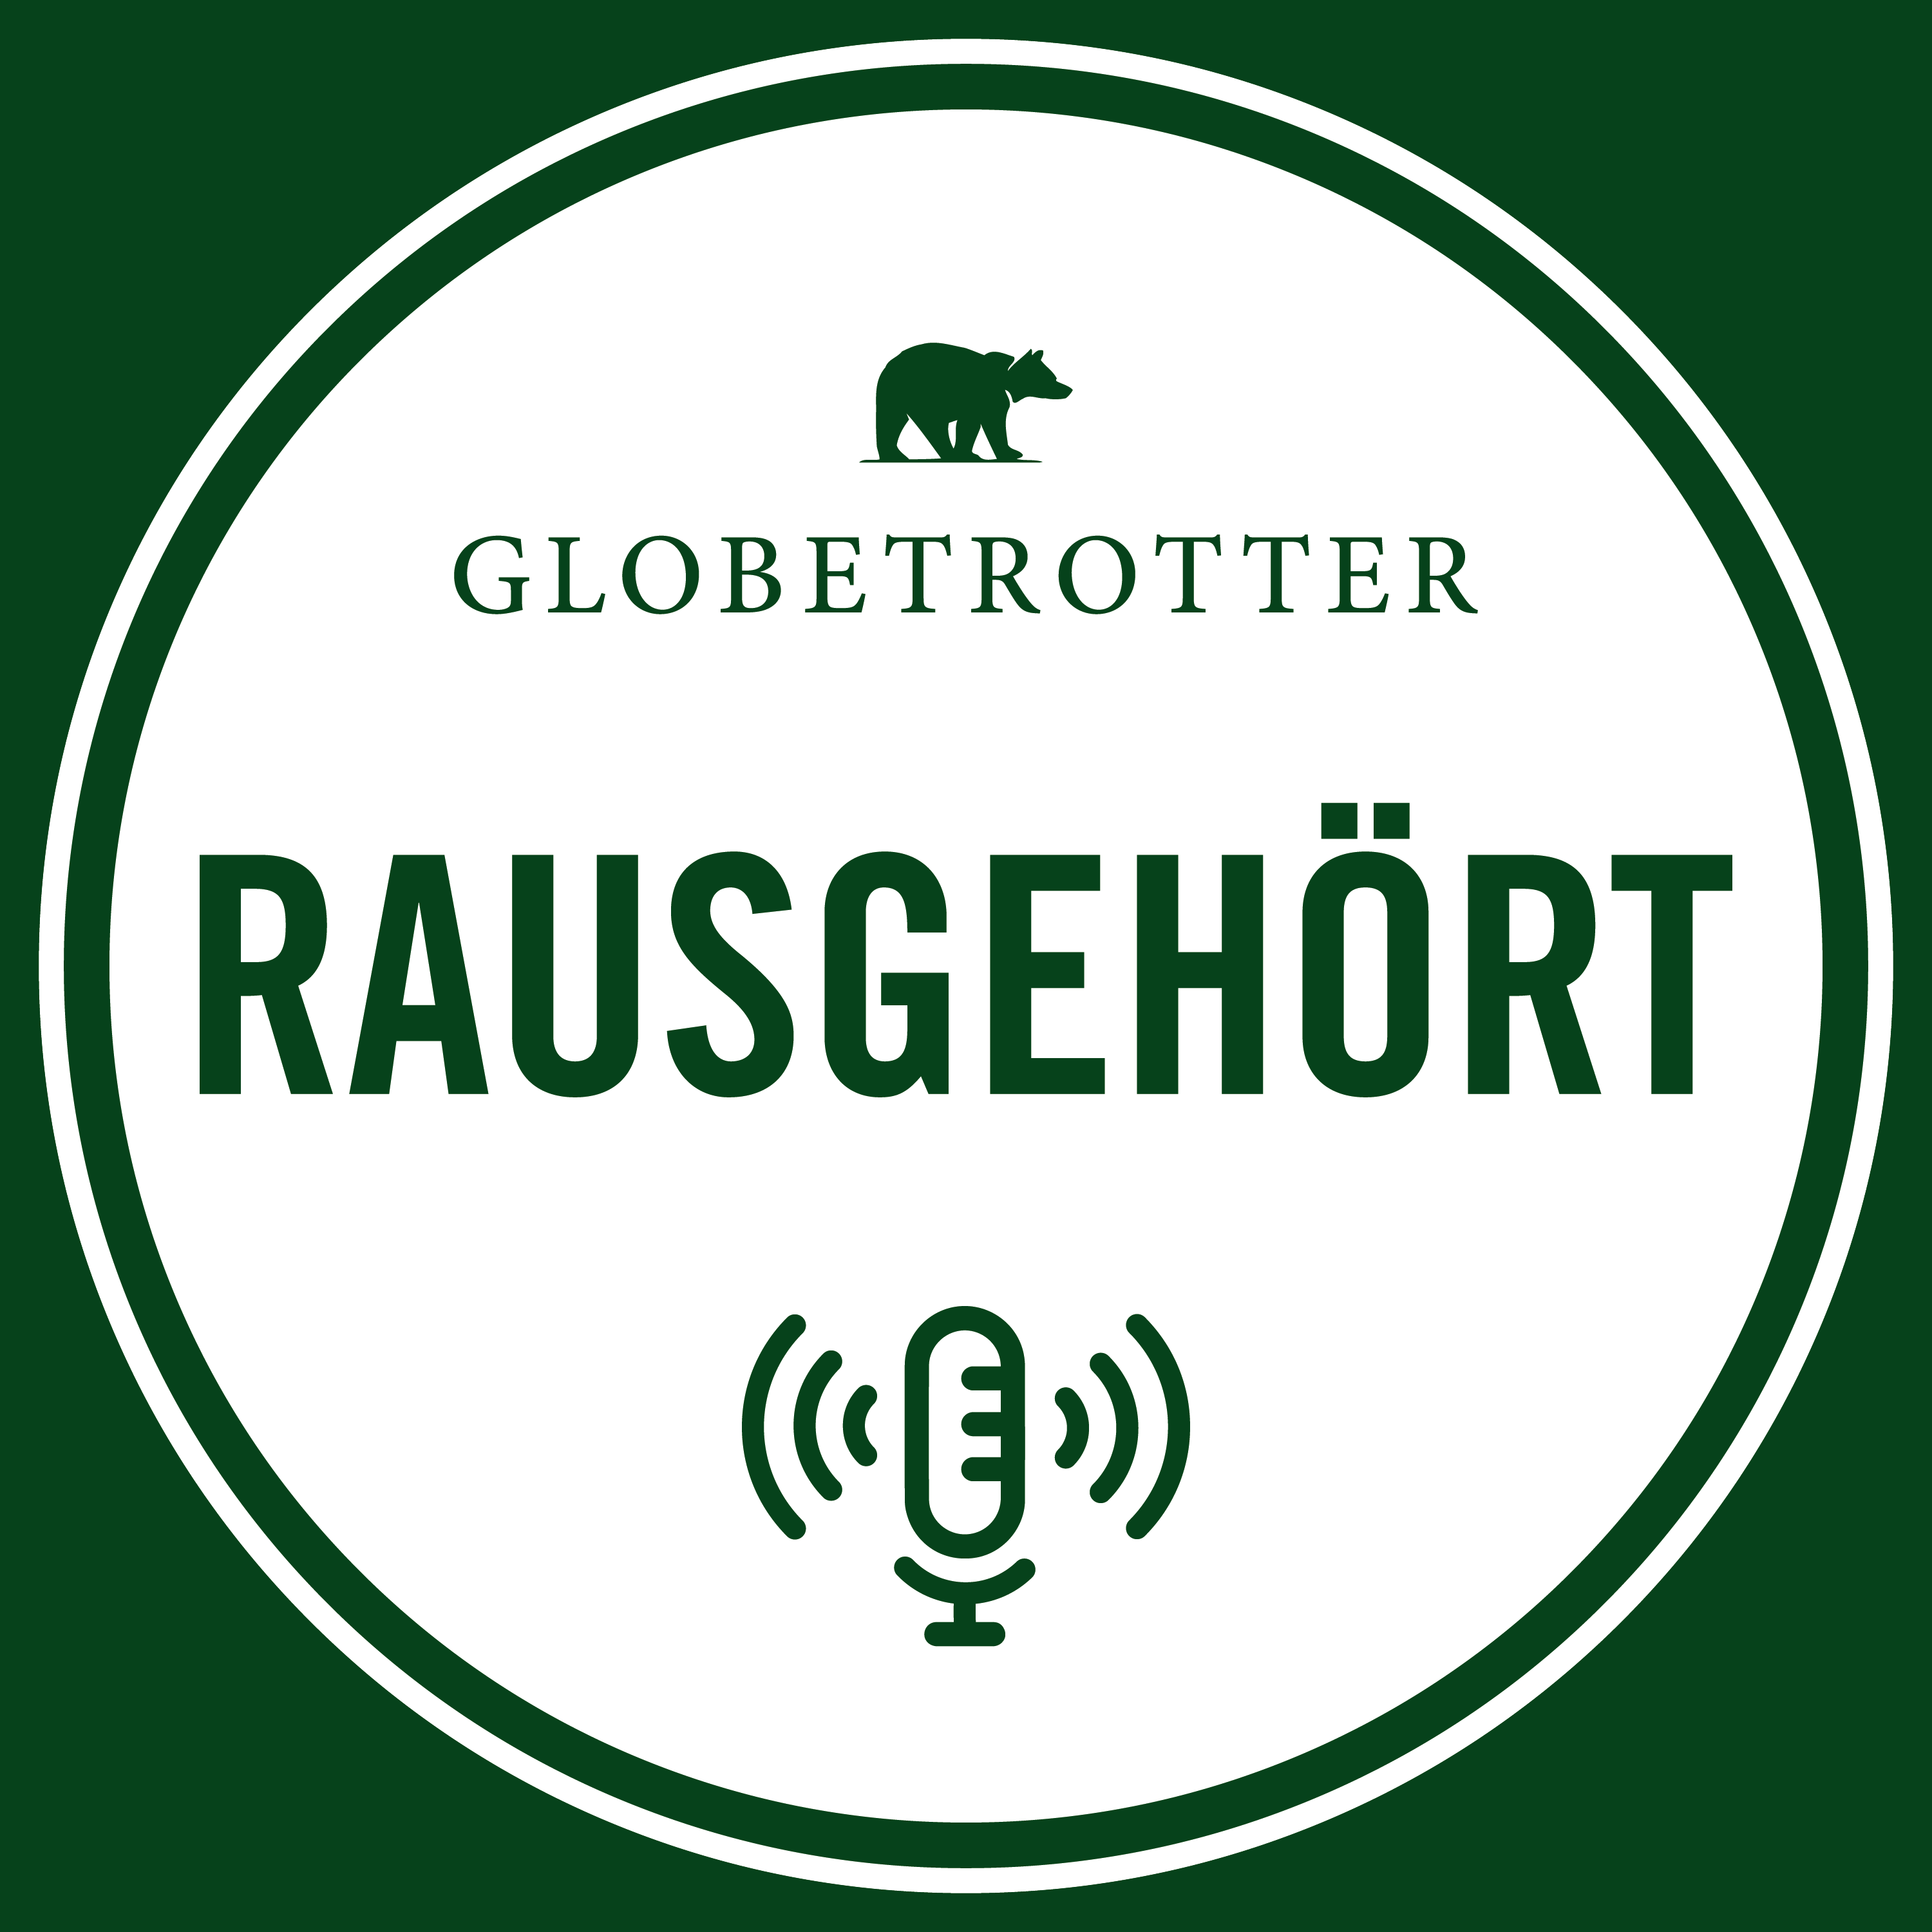 Globetrotter Podcast Rausgehört Cover